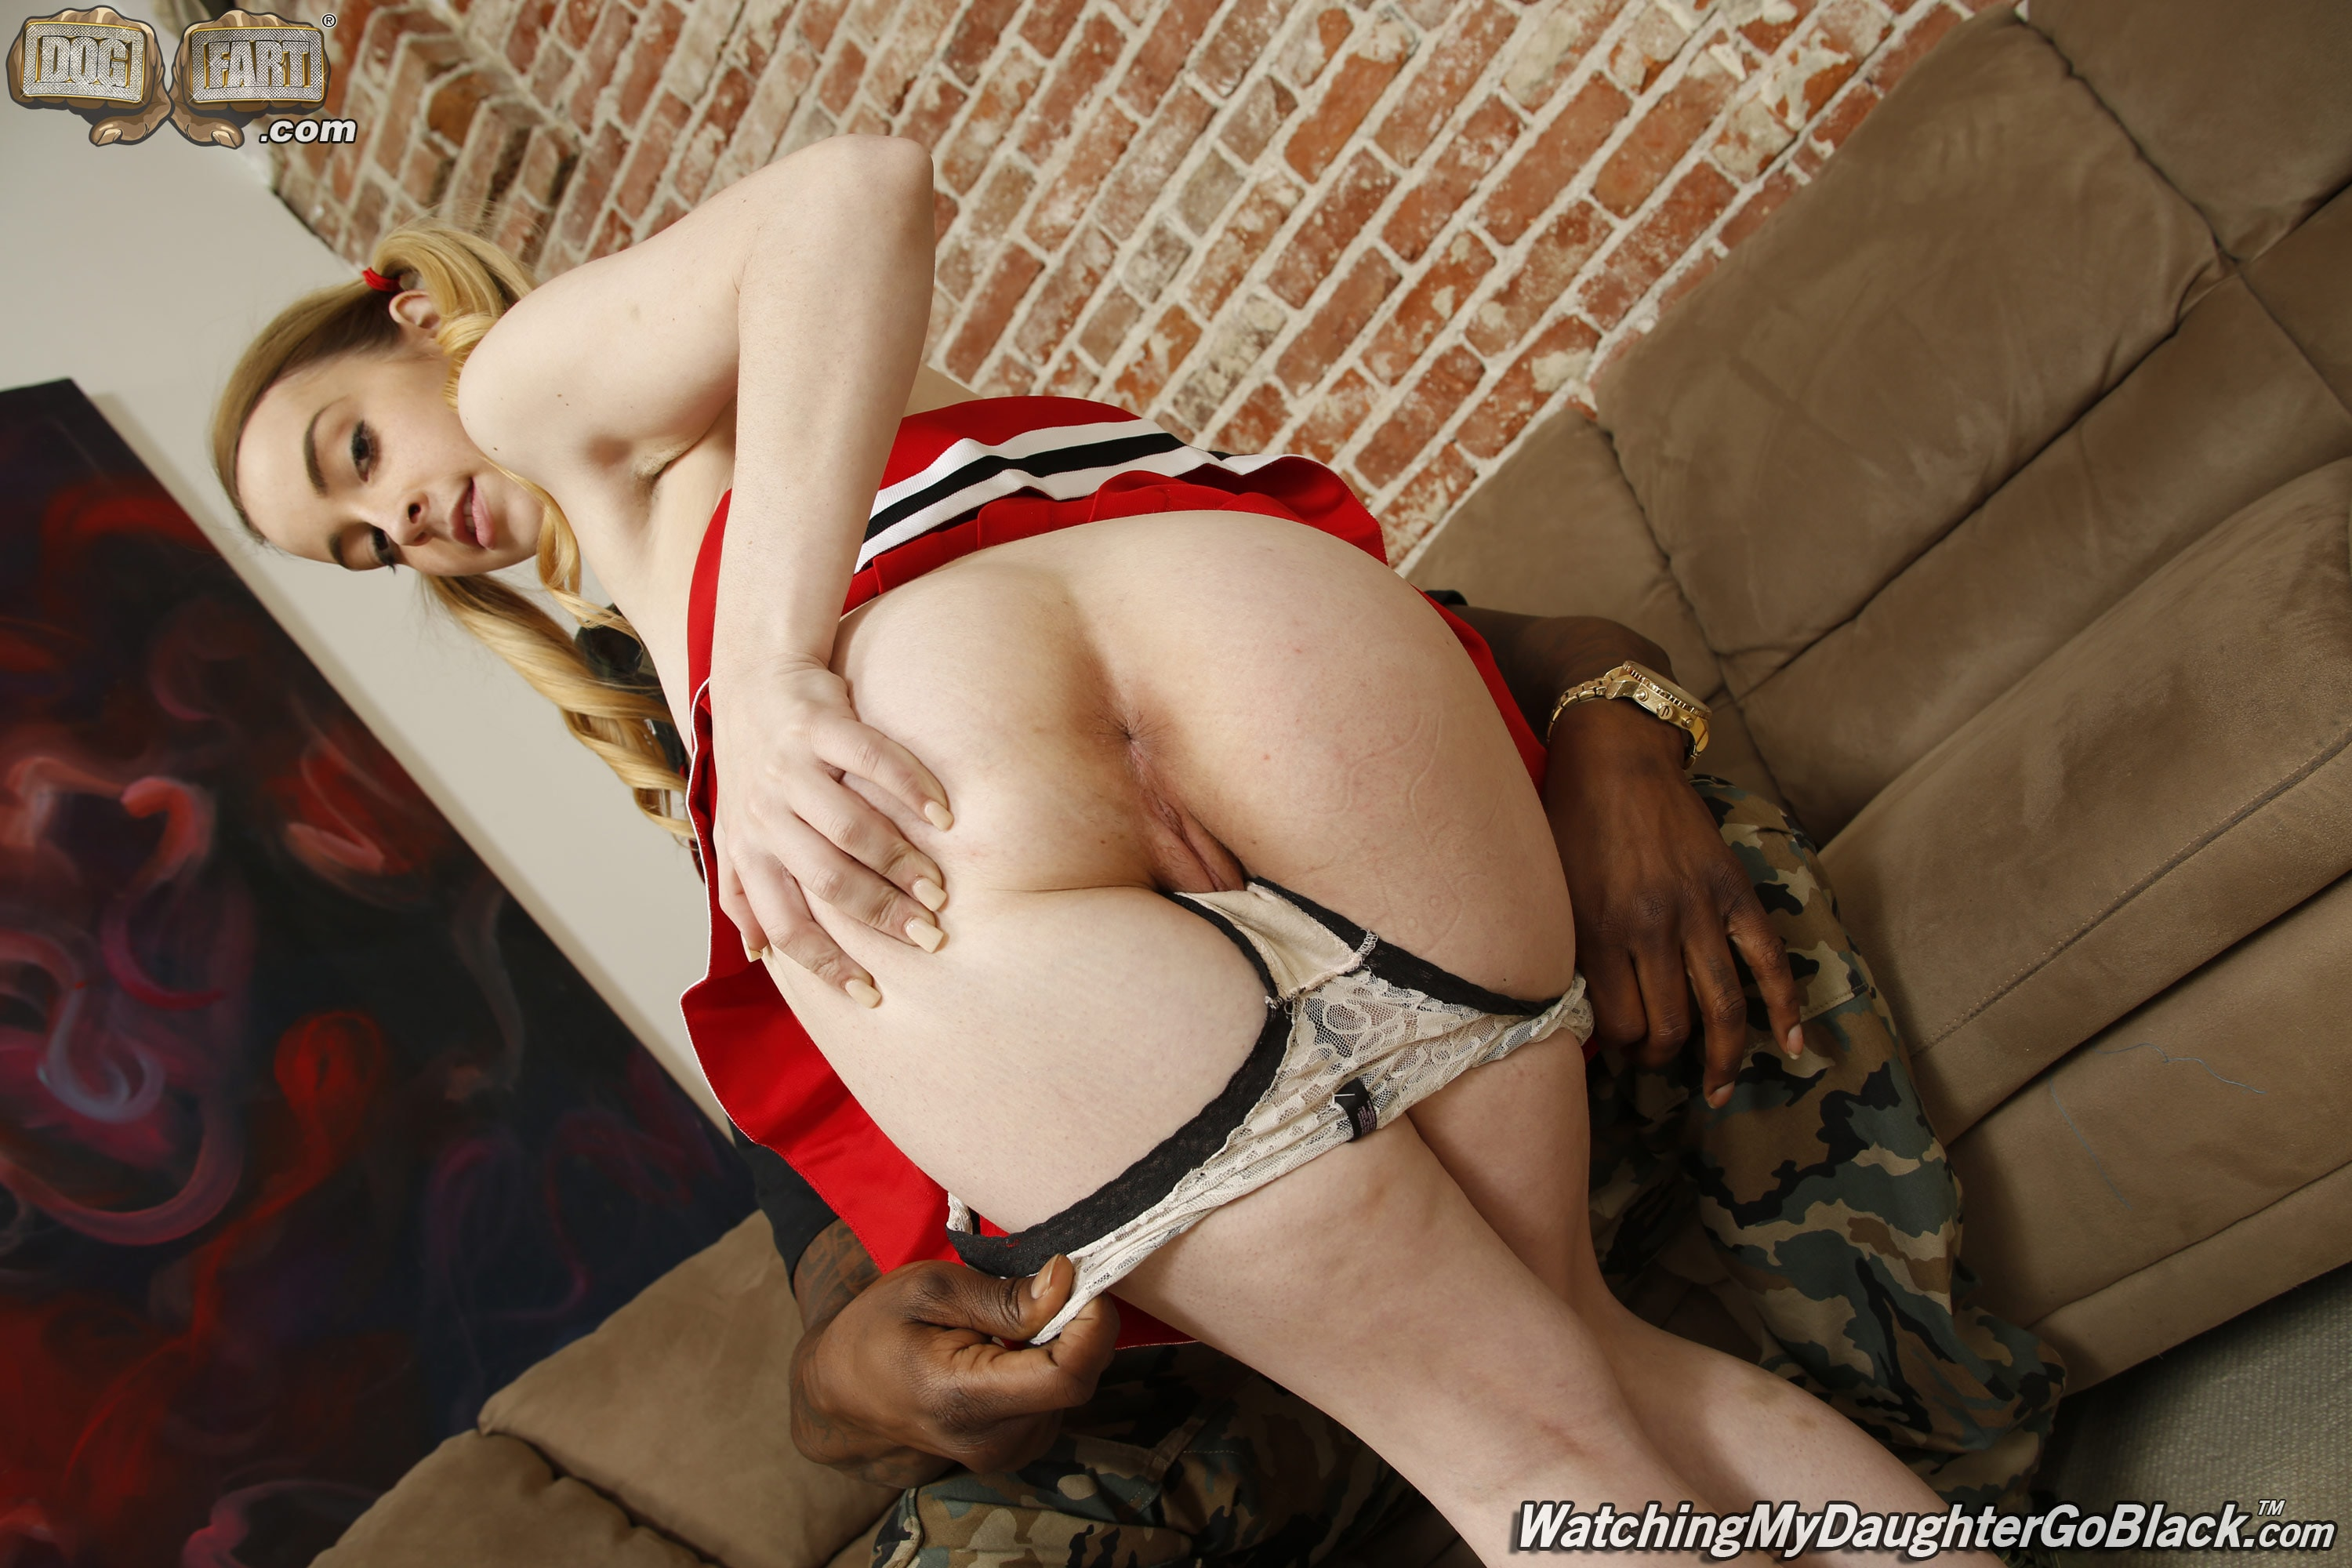 Dogfart 'Alexia Gold - Watching My Daughter Go Black' starring Alexia Gold (photo 11)